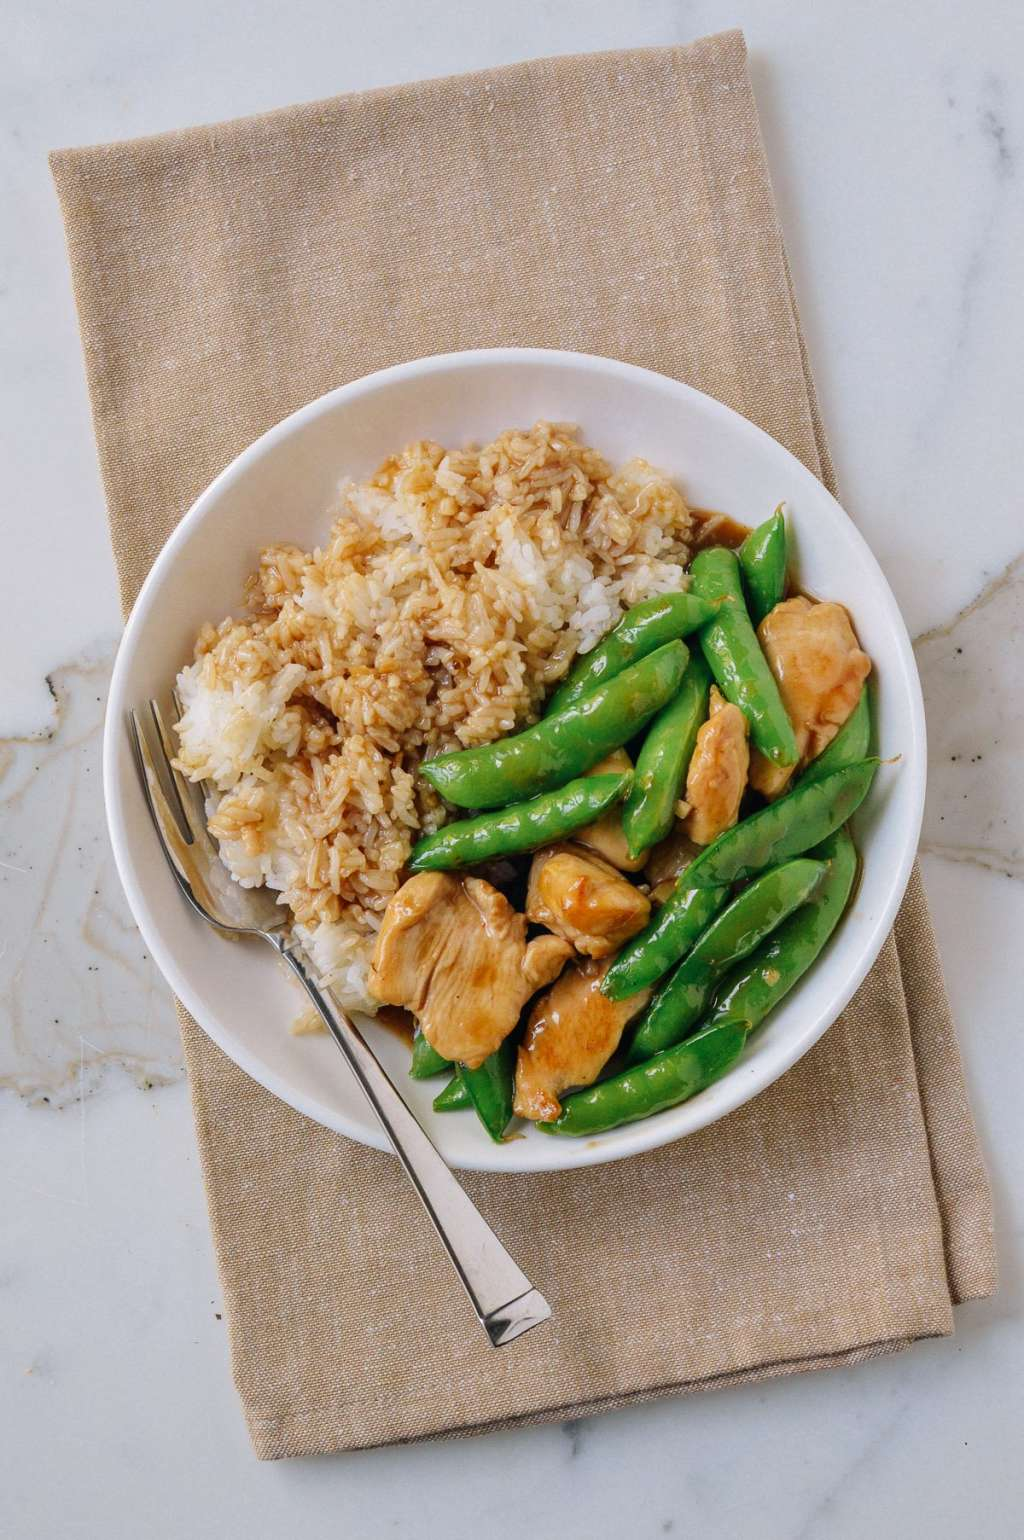 Recipe: Chicken and Snap Pea Stir-Fry